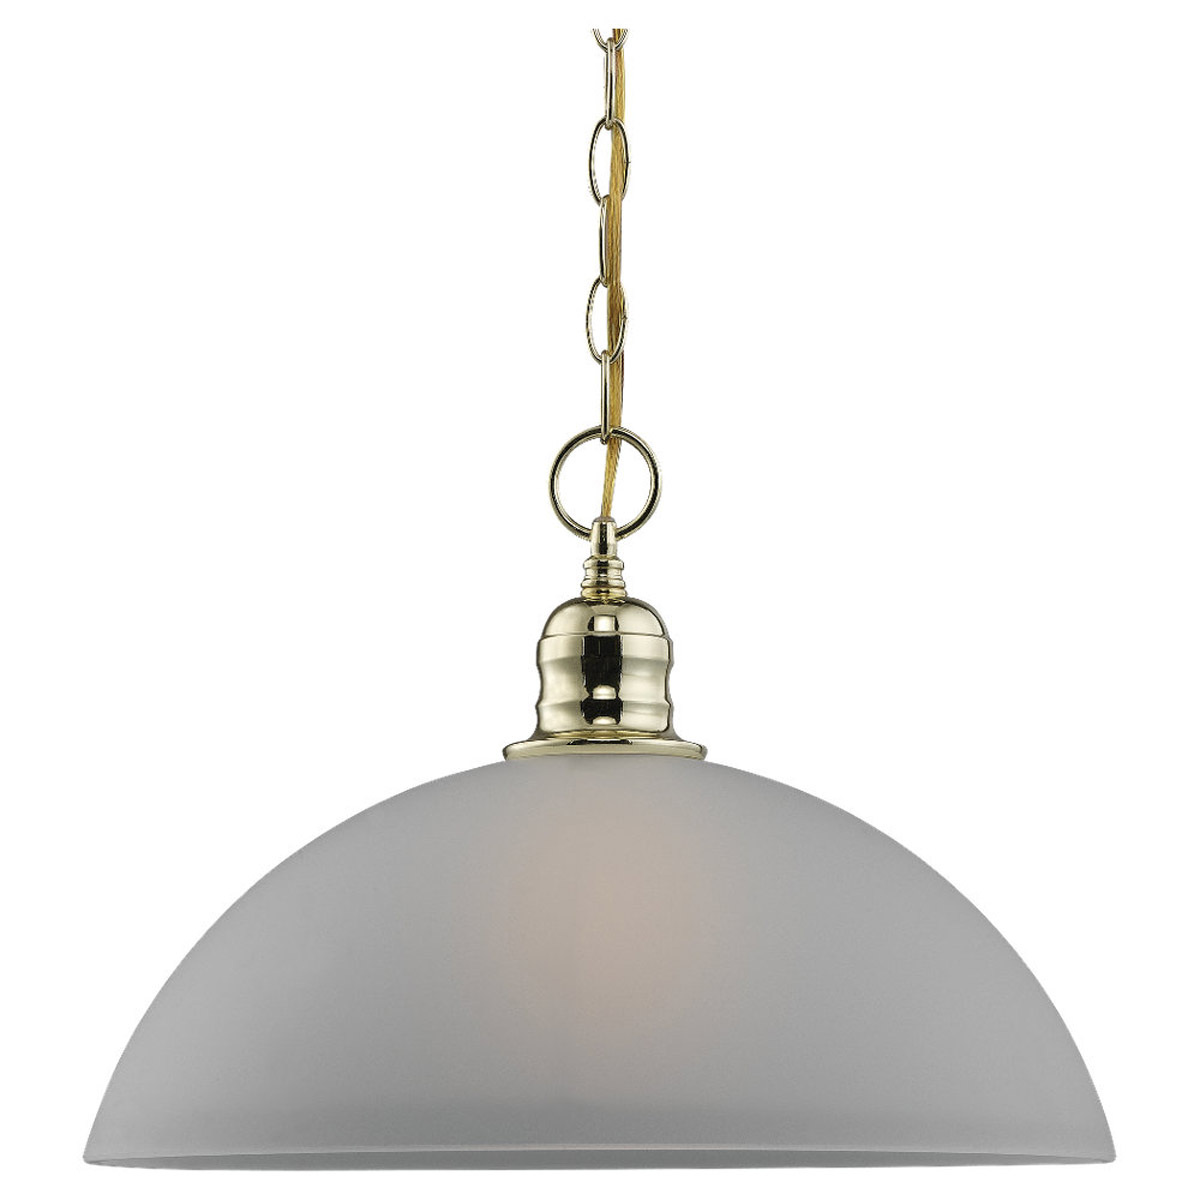 Sea Gull Lighting Linwood 1 Light Pendant in Polished Brass 65225-02